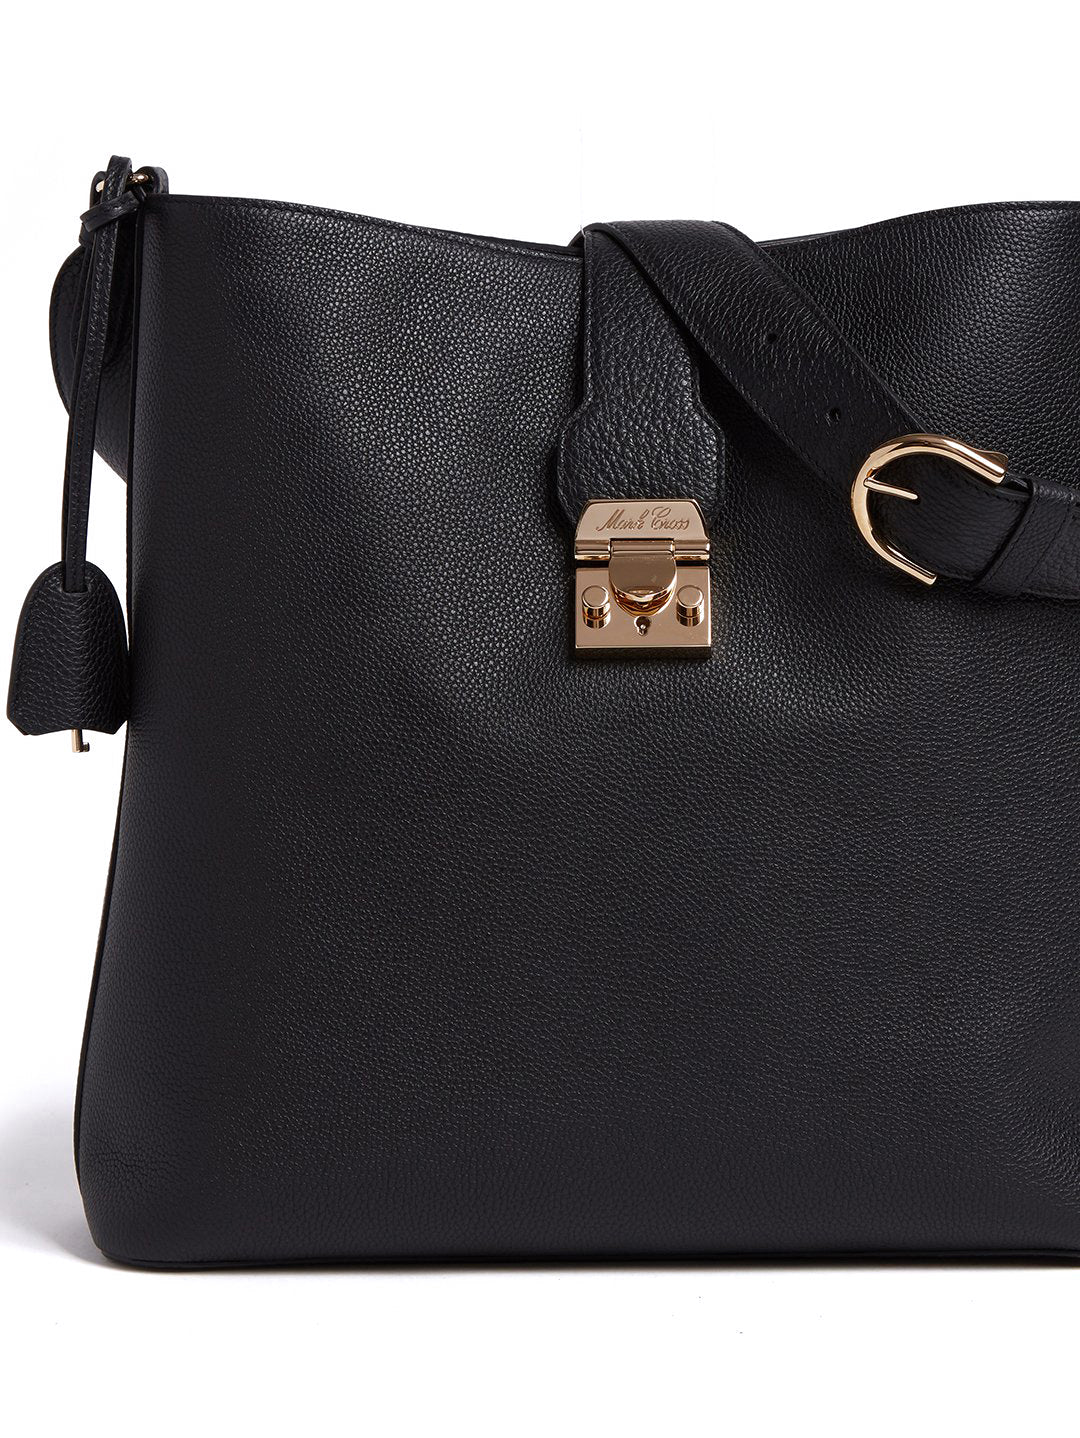 Murphy Hobo Leather Bucket Bag